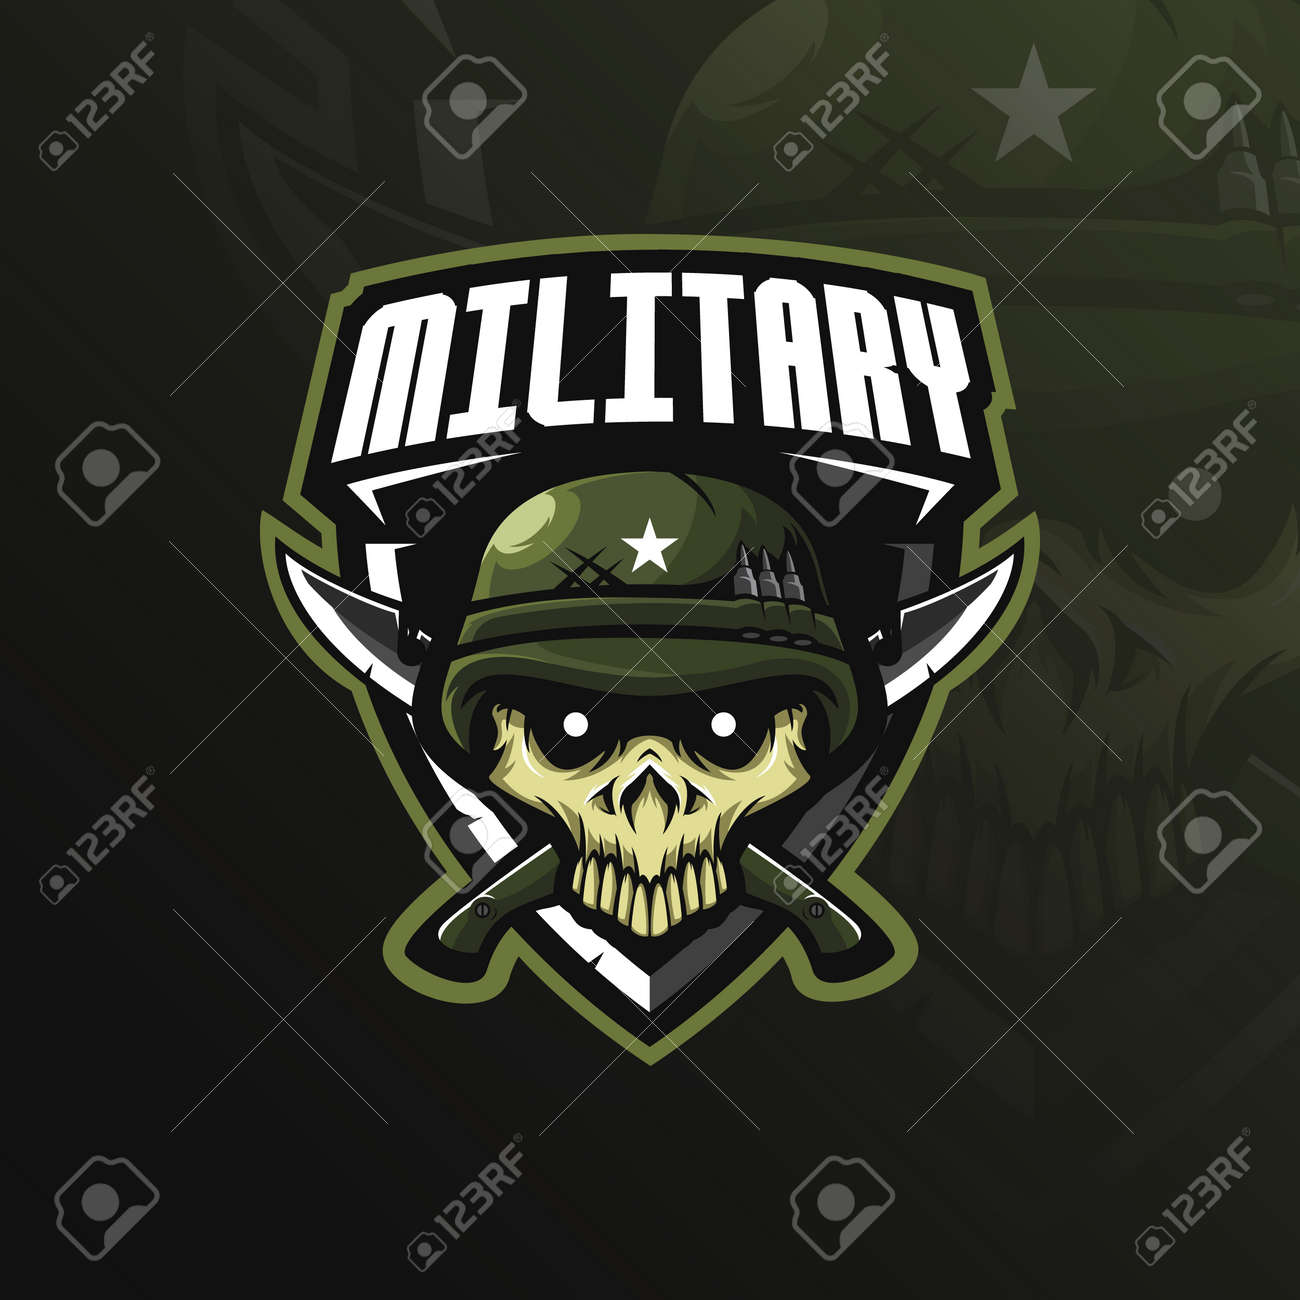 skull military mascot logo design vector with modern illustration royalty free cliparts vectors and stock illustration image 117795132 skull military mascot logo design vector with modern illustration